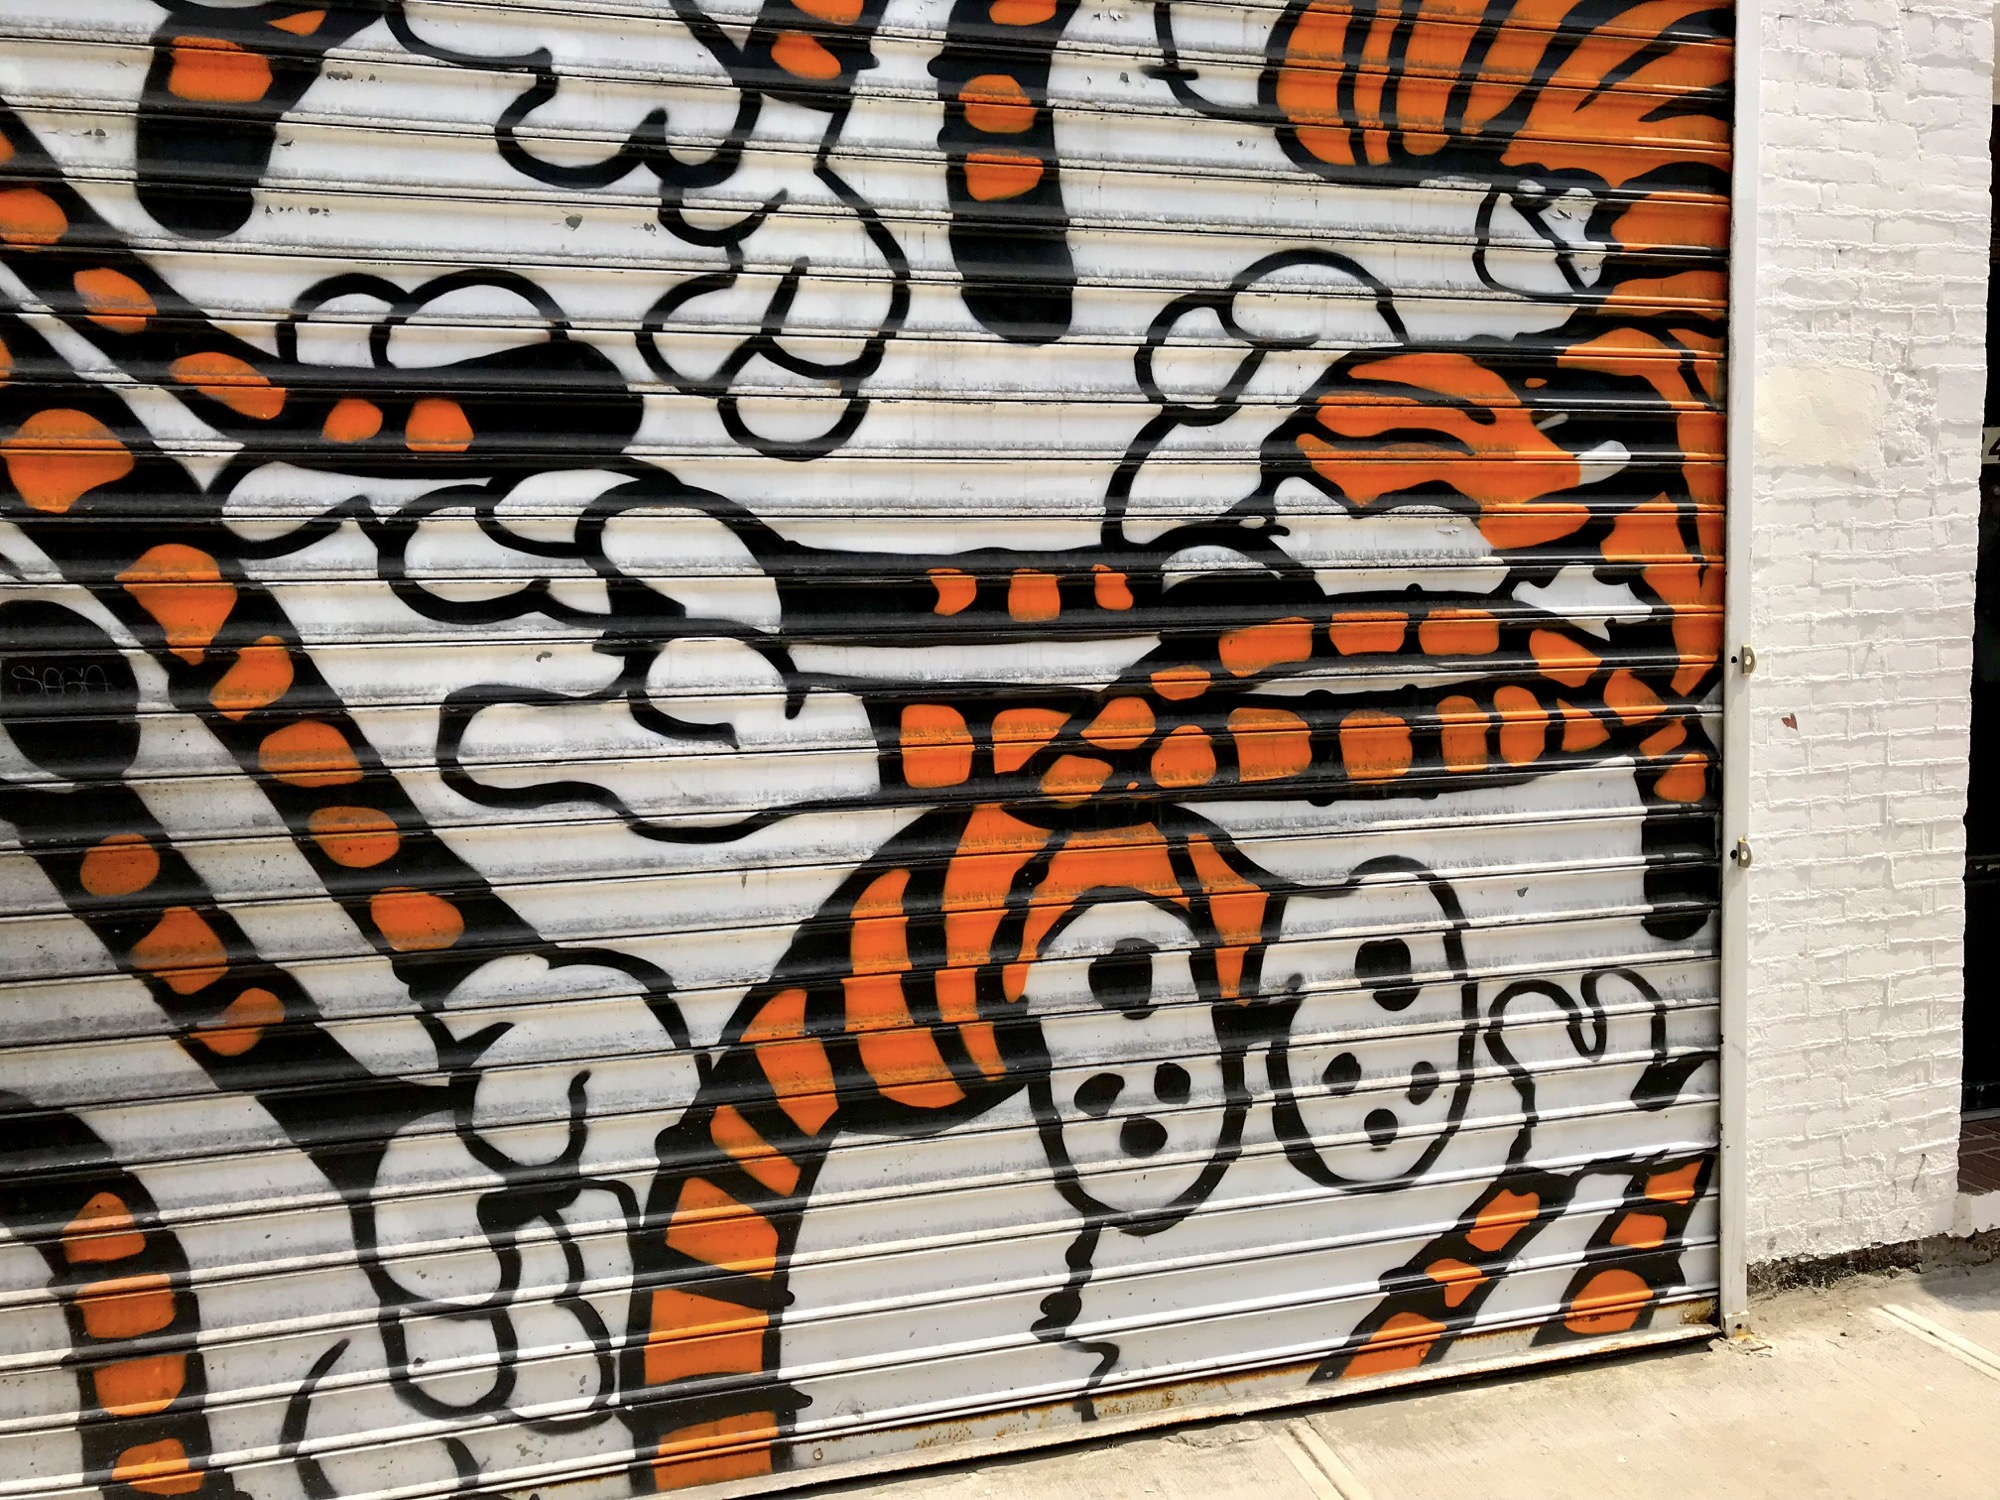 Photo of garage door with painting of Hobbes from Calvin and Hobbes.